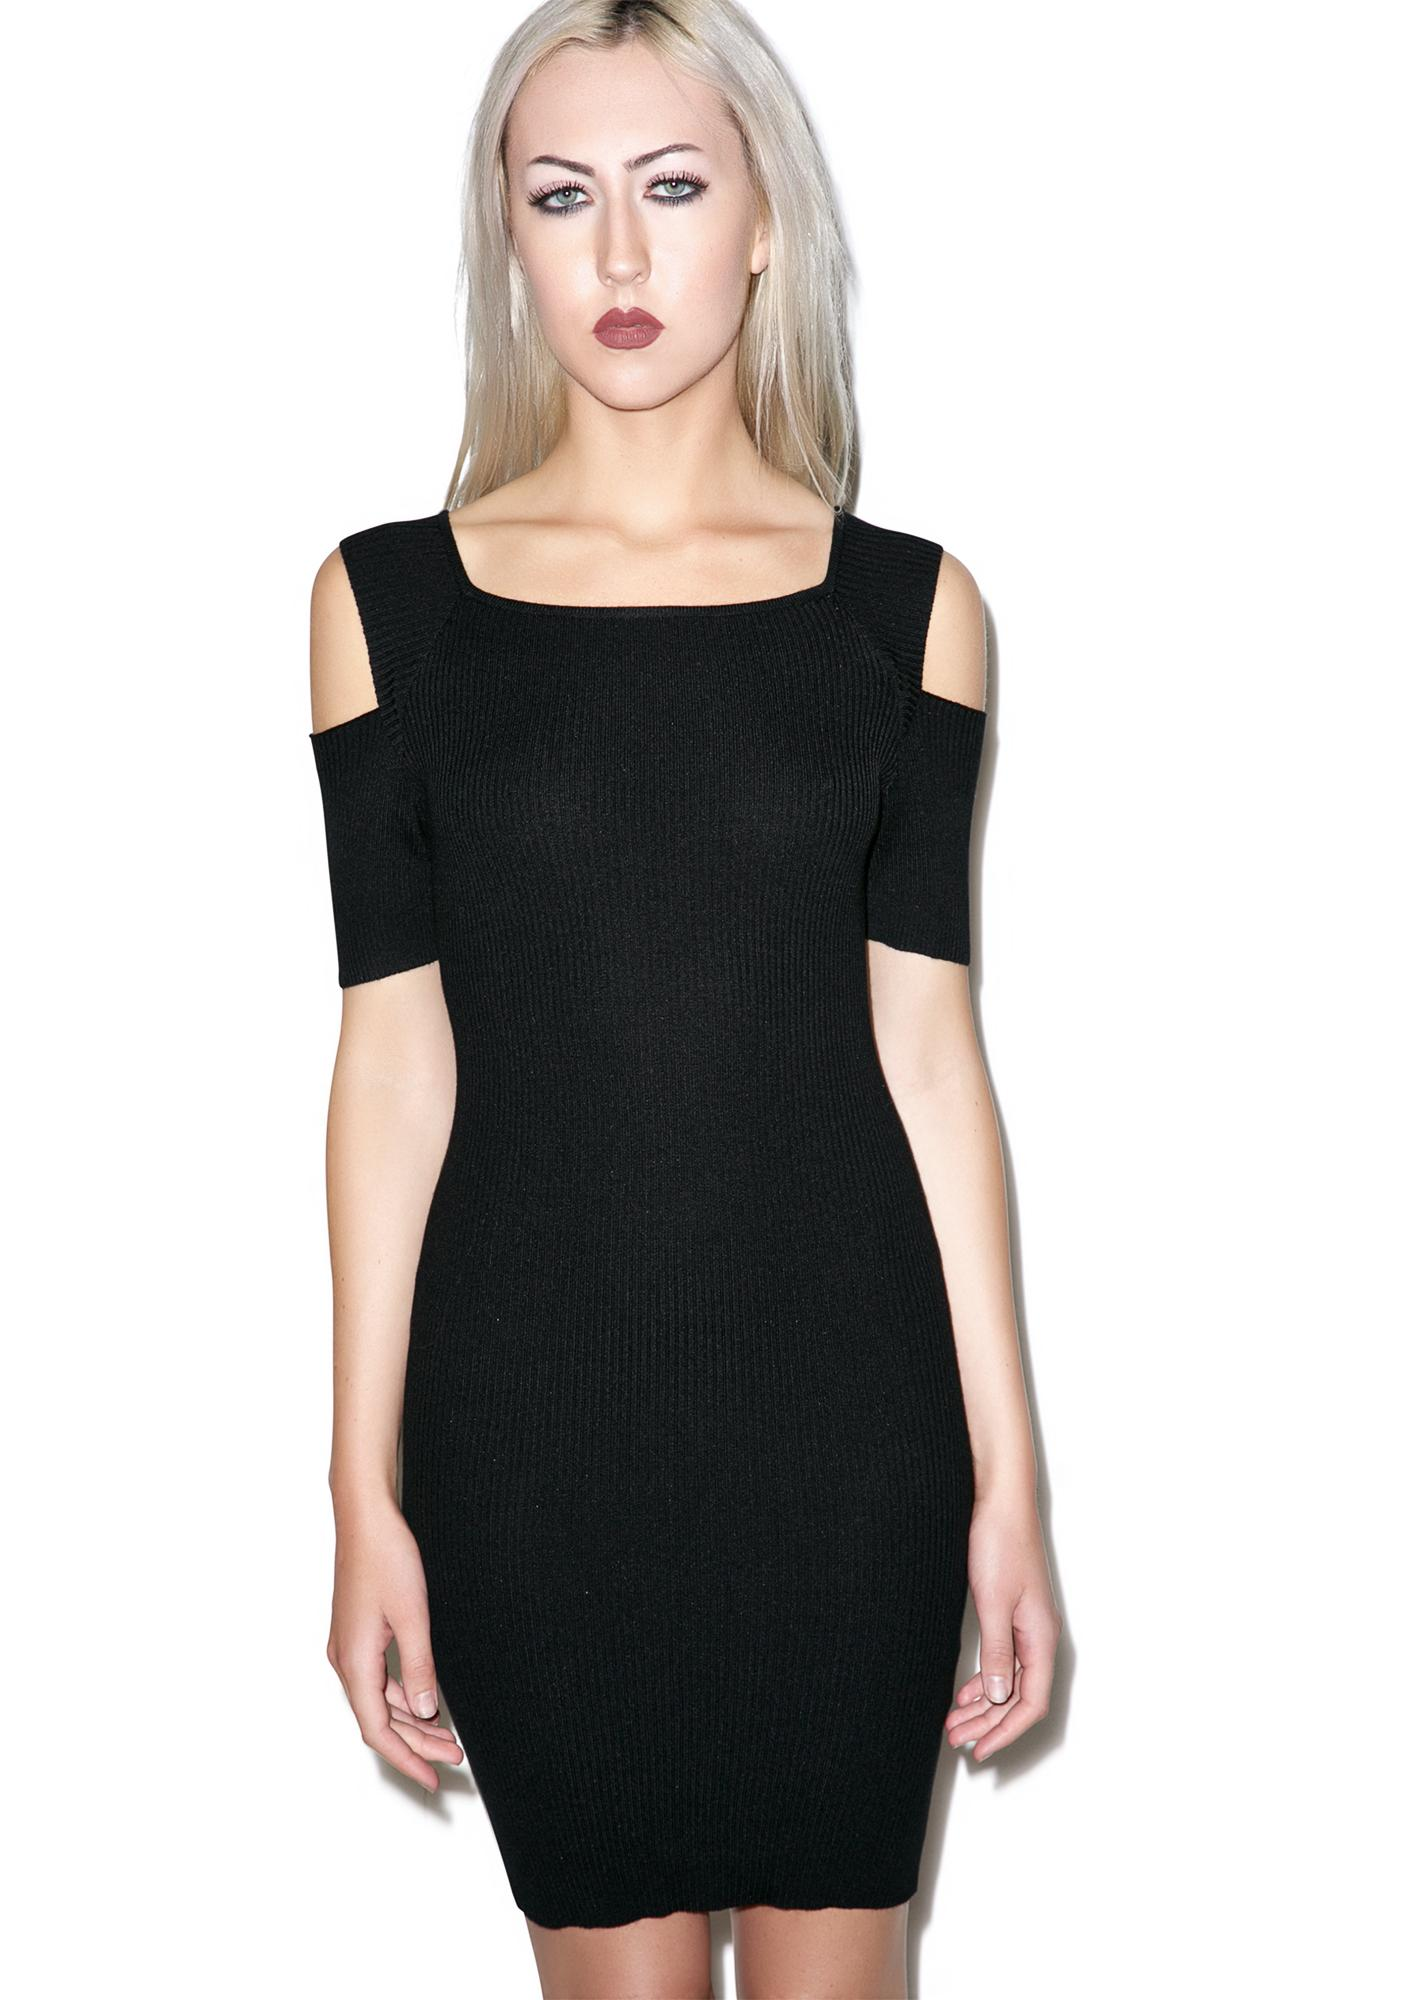 Adrenaline Bodycon